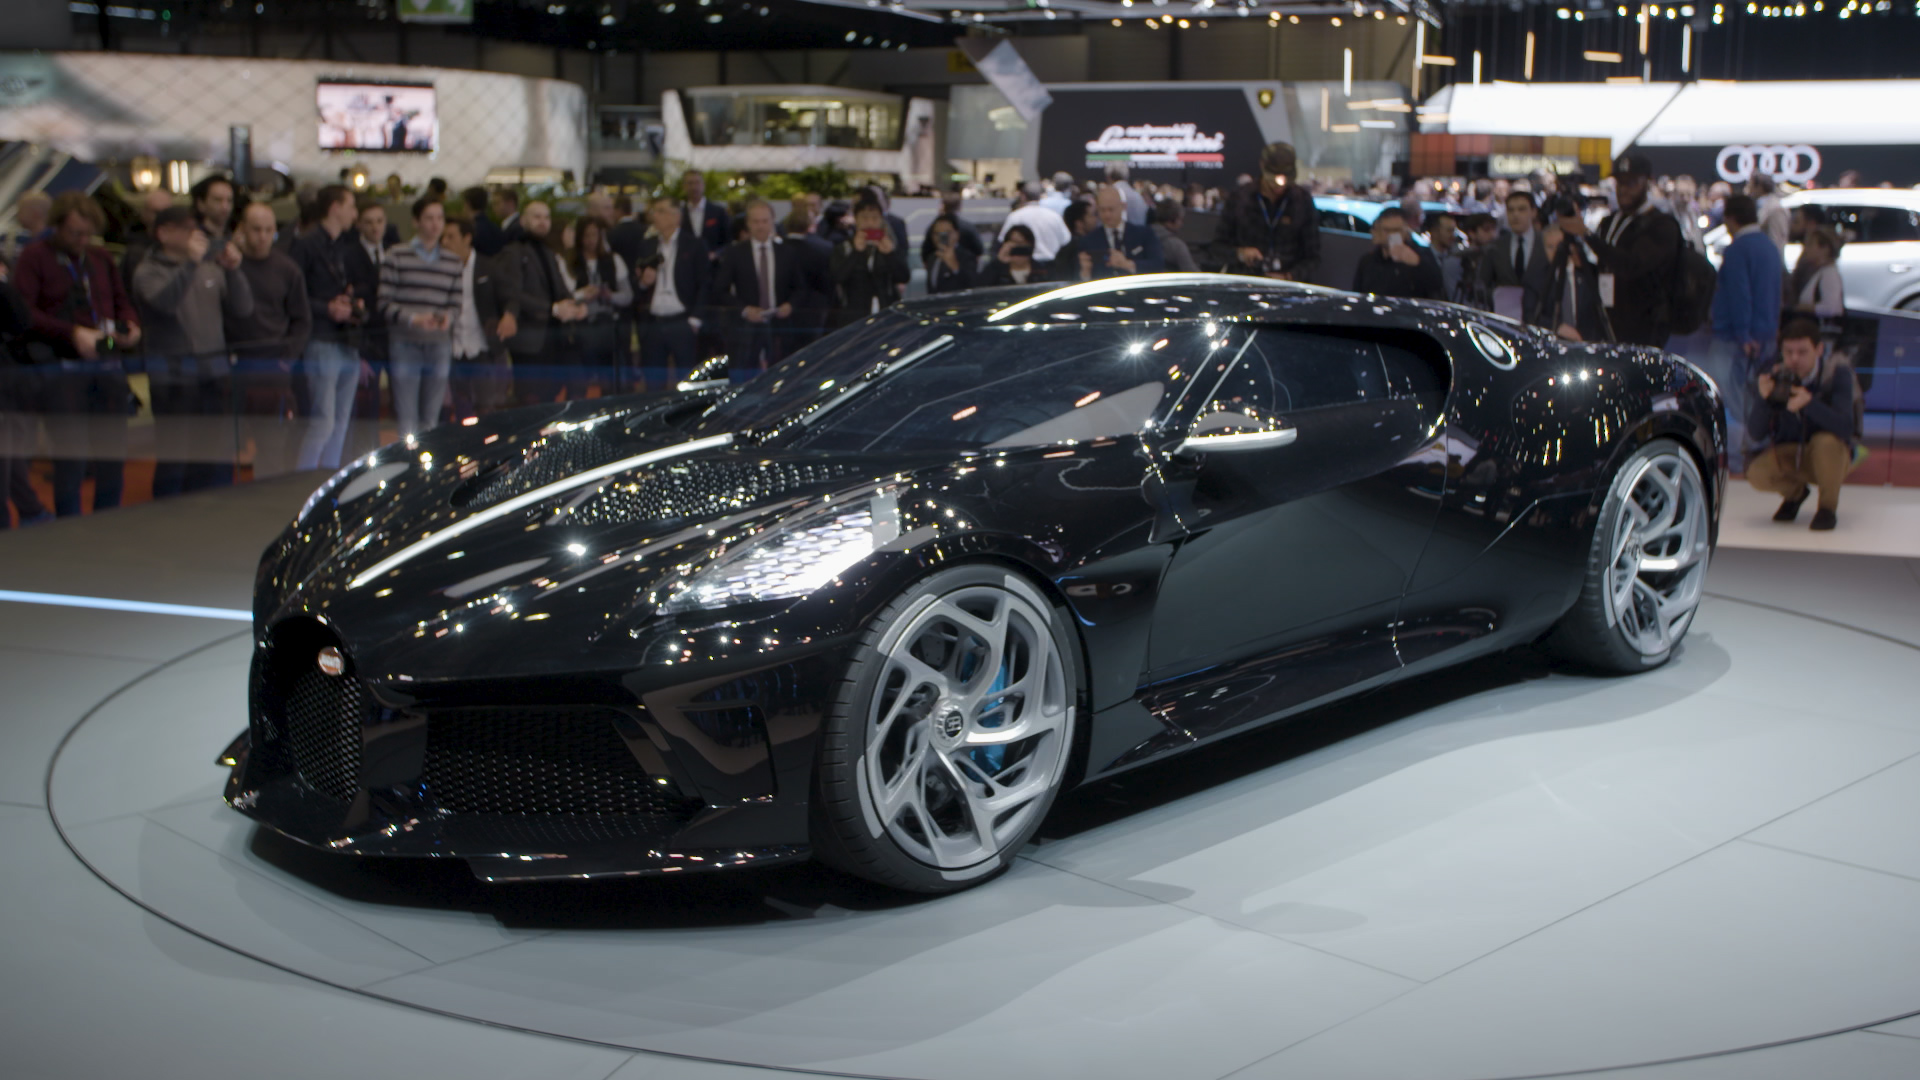 At Almost 19 Million This Bugatti Is The Most Expensive New Car Ever Sold Cnn